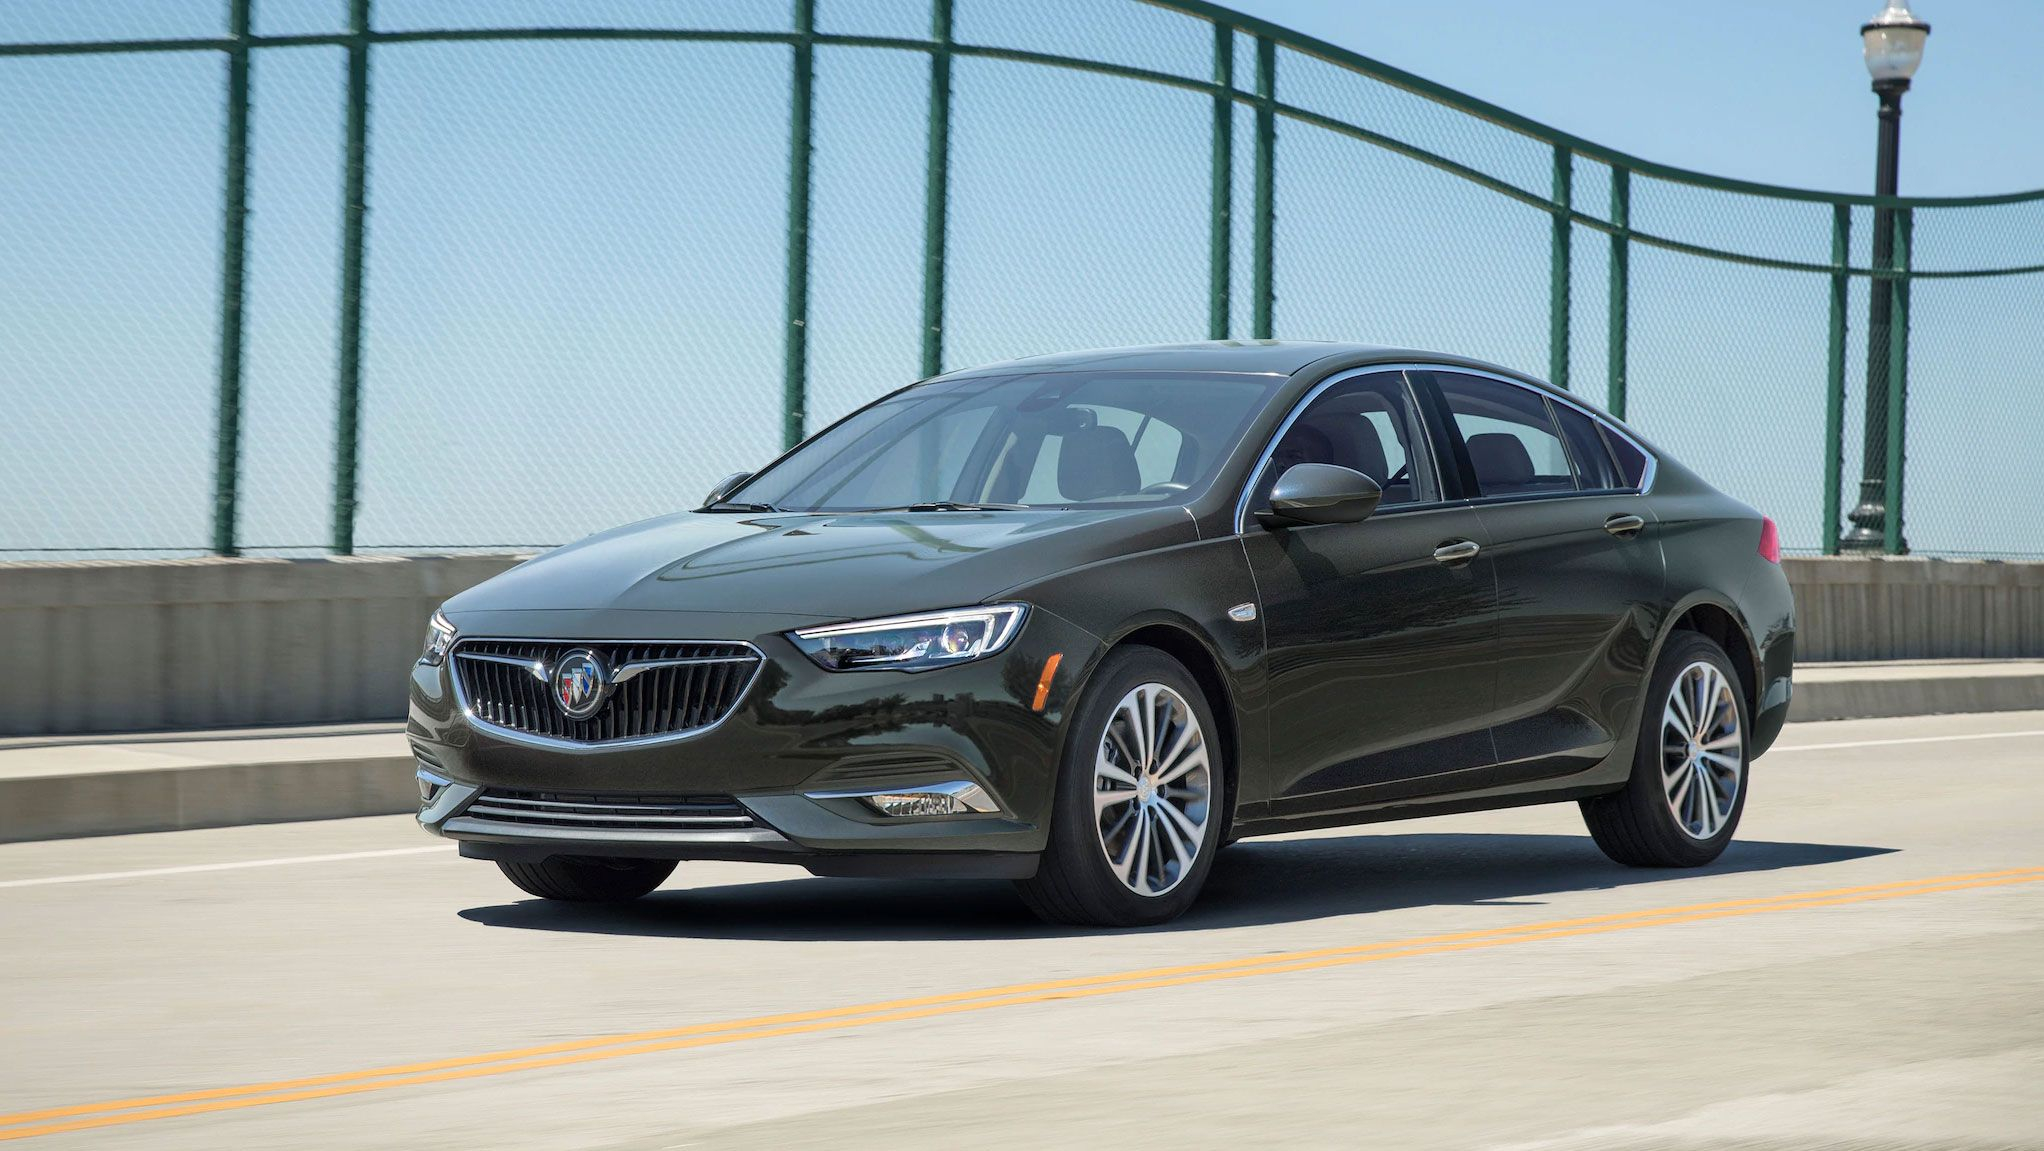 2020 Buick Regal Sportback Review, Pricing, And Specs 2021 Buick Regal Awd, Dimensions, Price